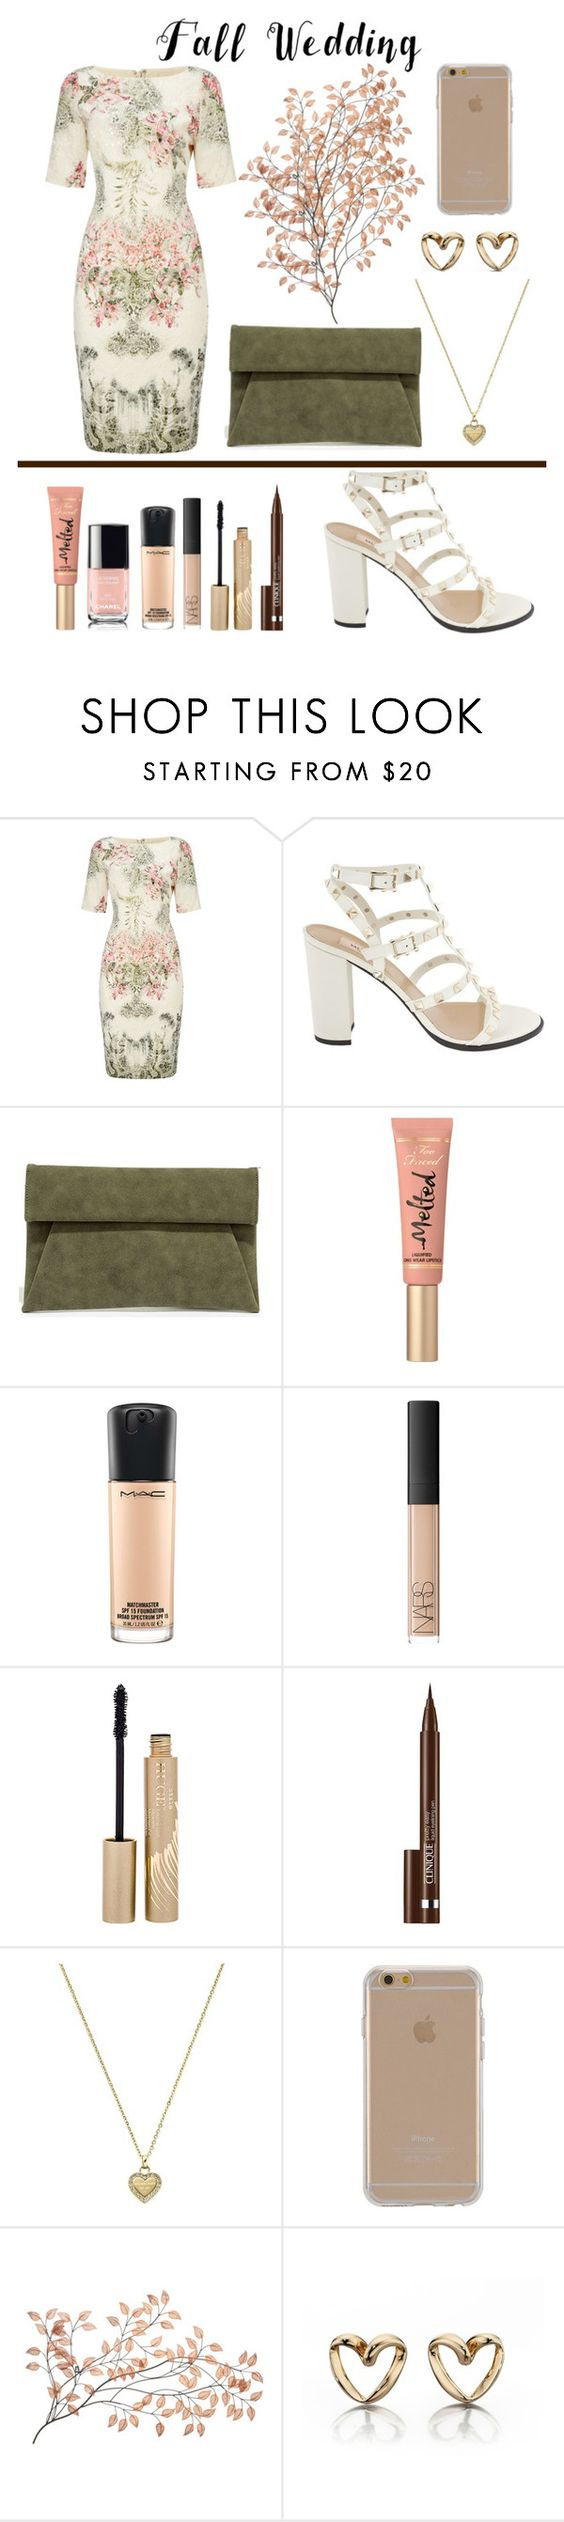 """Fall Wedding"" by kirsty-mckenzie44 ❤ liked on Polyvore featuring Adrianna Papell, Valentino, LULUS, Too Faced Cosmetics, MAC Cosmetics, NARS Cosmetics, Stila, Clinique, Michael Kors and Agent 18"